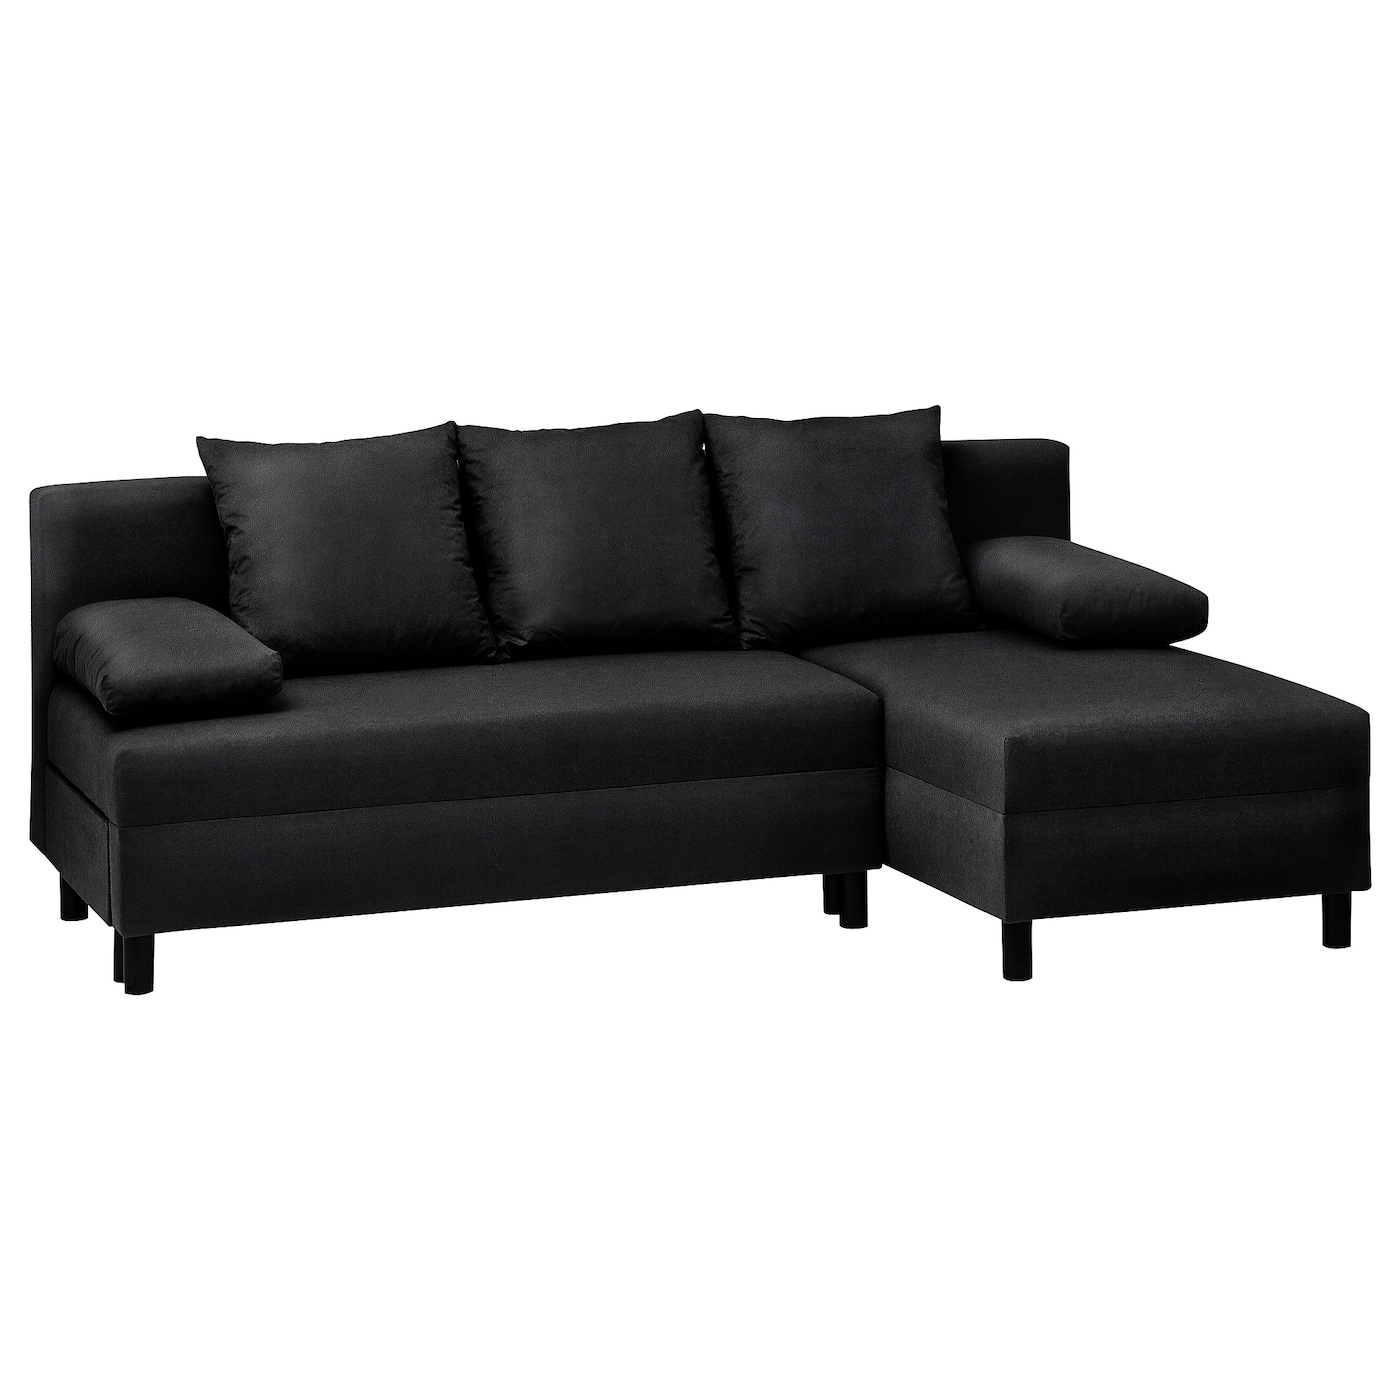 Ikea Angsta 3 Seat Sofa Bed Chaise Longue And Double In